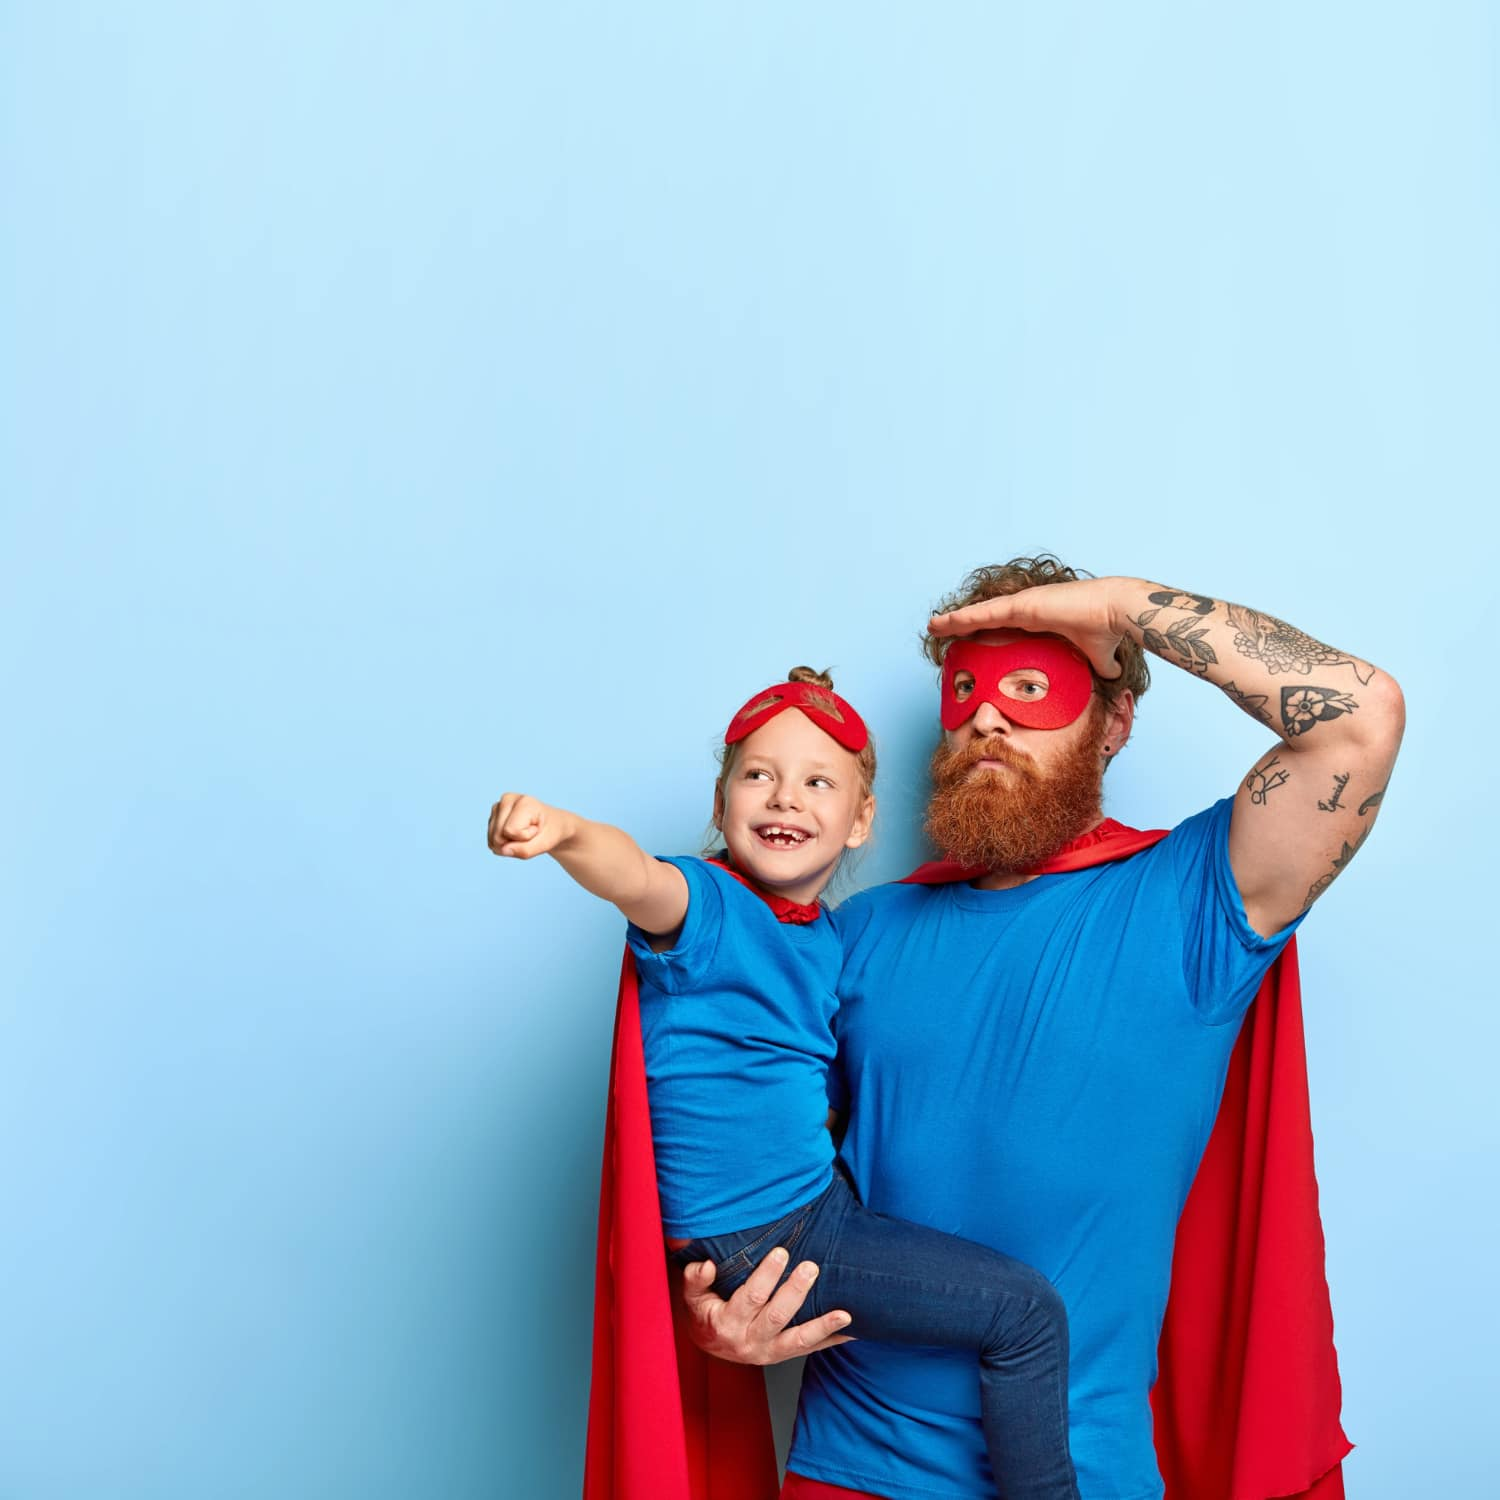 Tips for Recognizing and Nurturing Your Child's Strengths